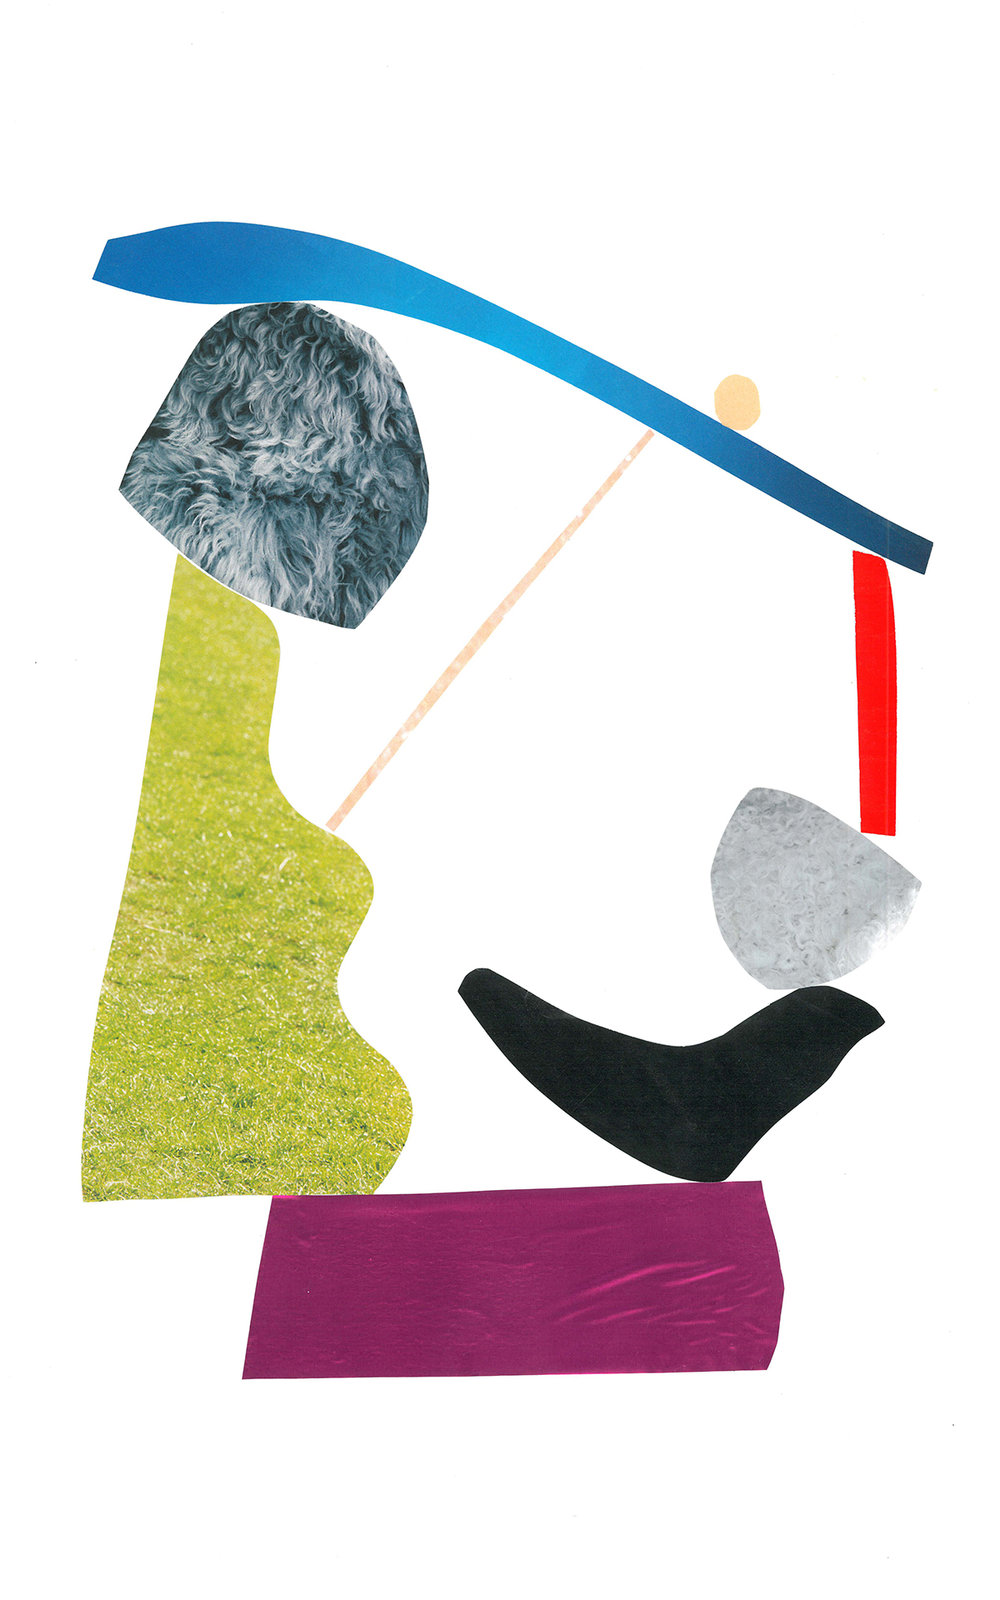 Untitled Collage 2, Mixed media on paper, 2015